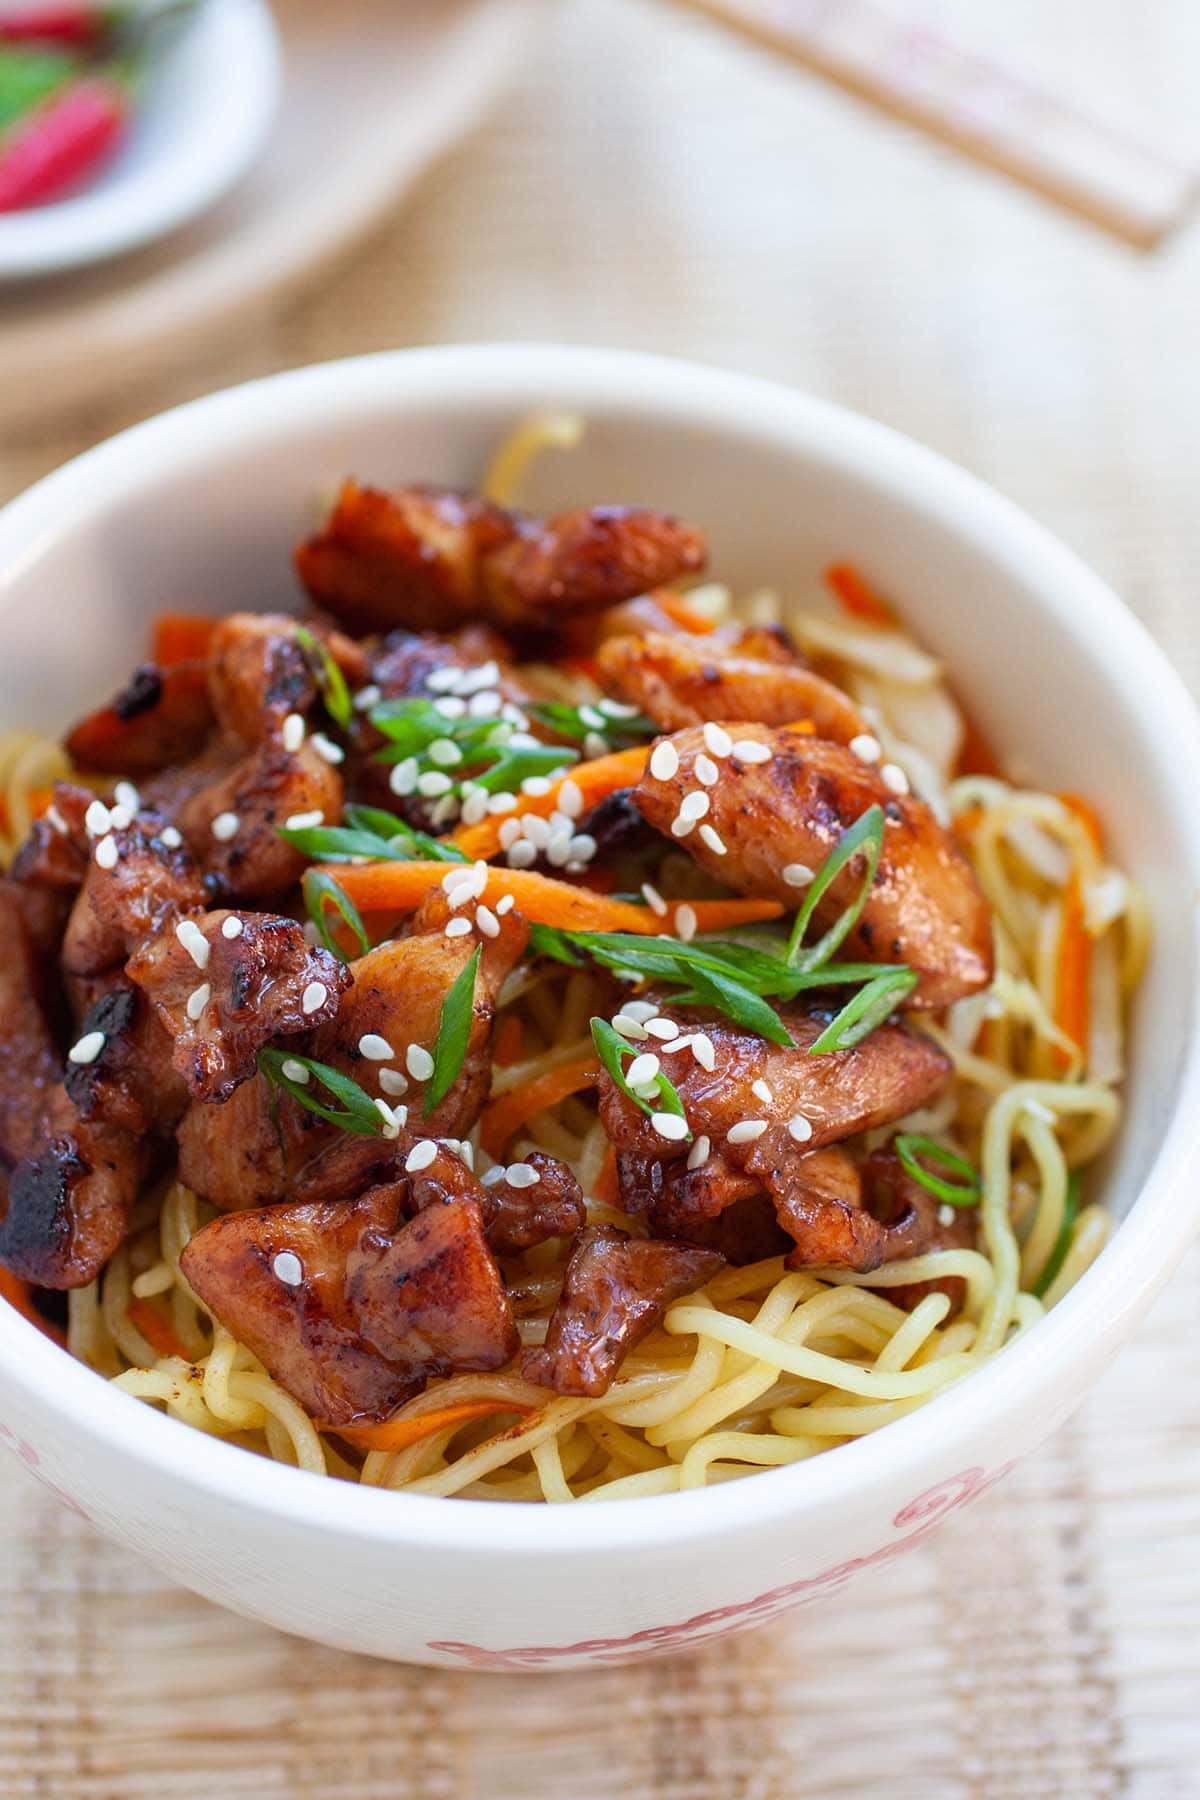 Egg noodles stir-fried in this chicken noodle recipe that is super easy and delicious.